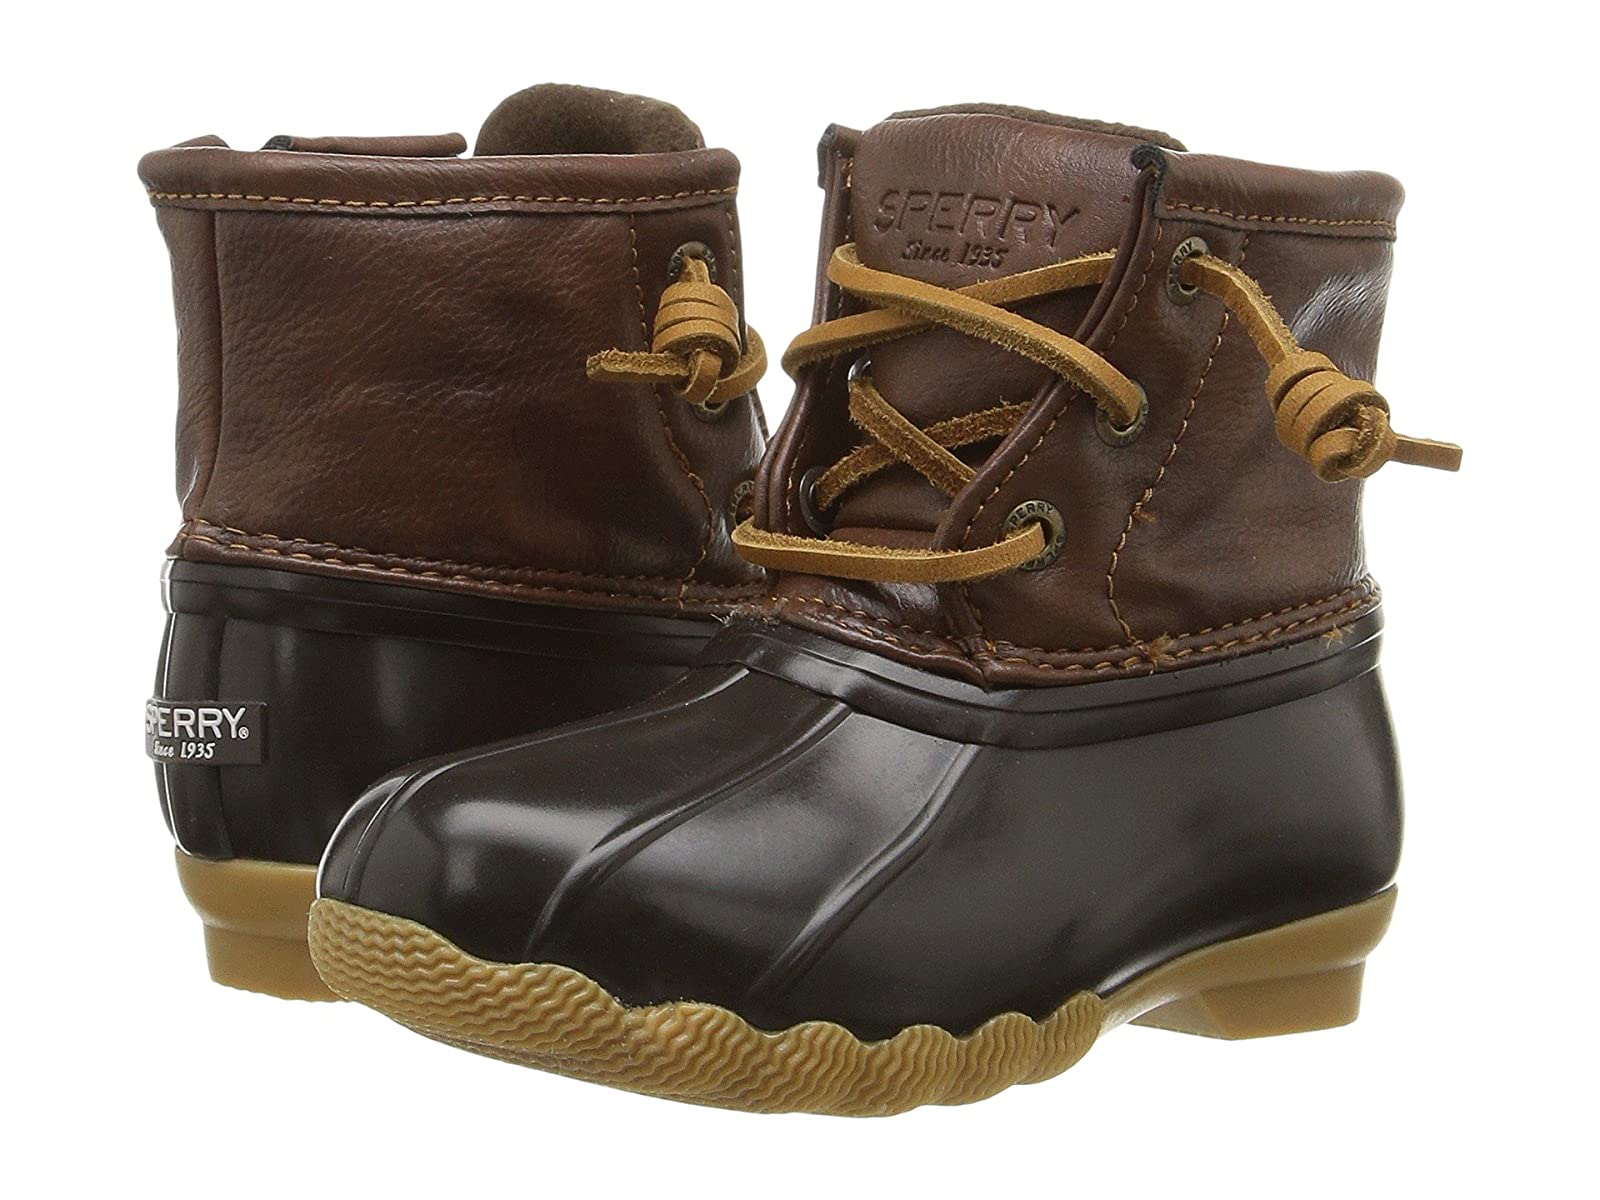 Sperry Kids Saltwater Boot (Toddler/Little Kid)Economical and quality shoes